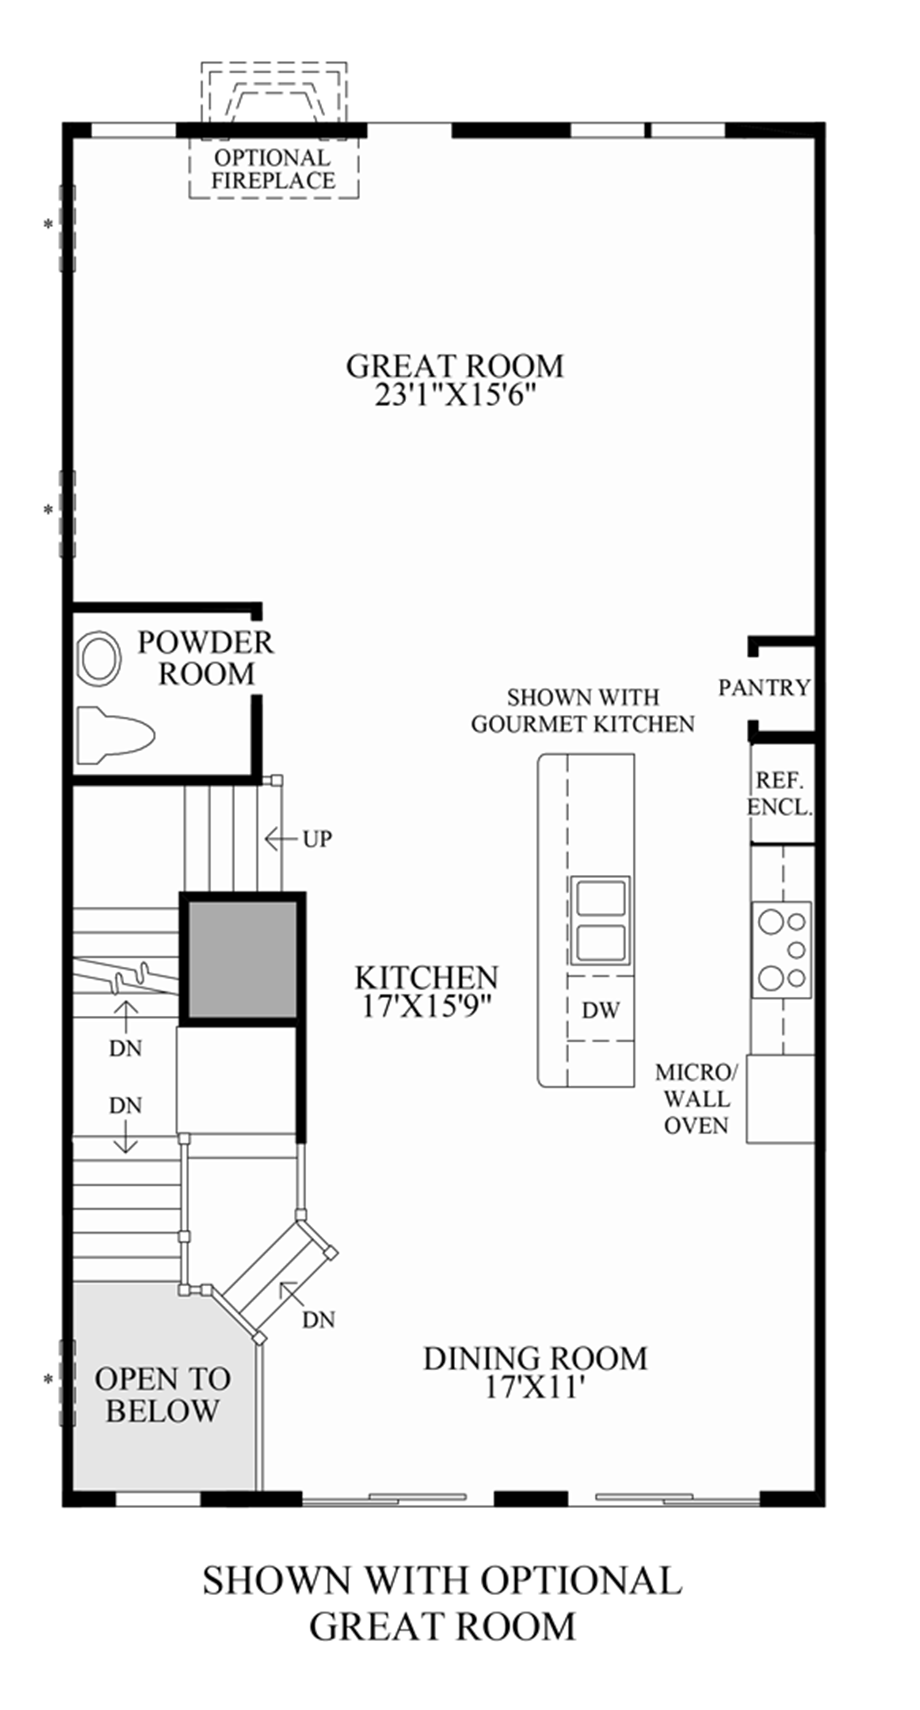 Optional Great Room (Lower Level Entry) Floor Plan